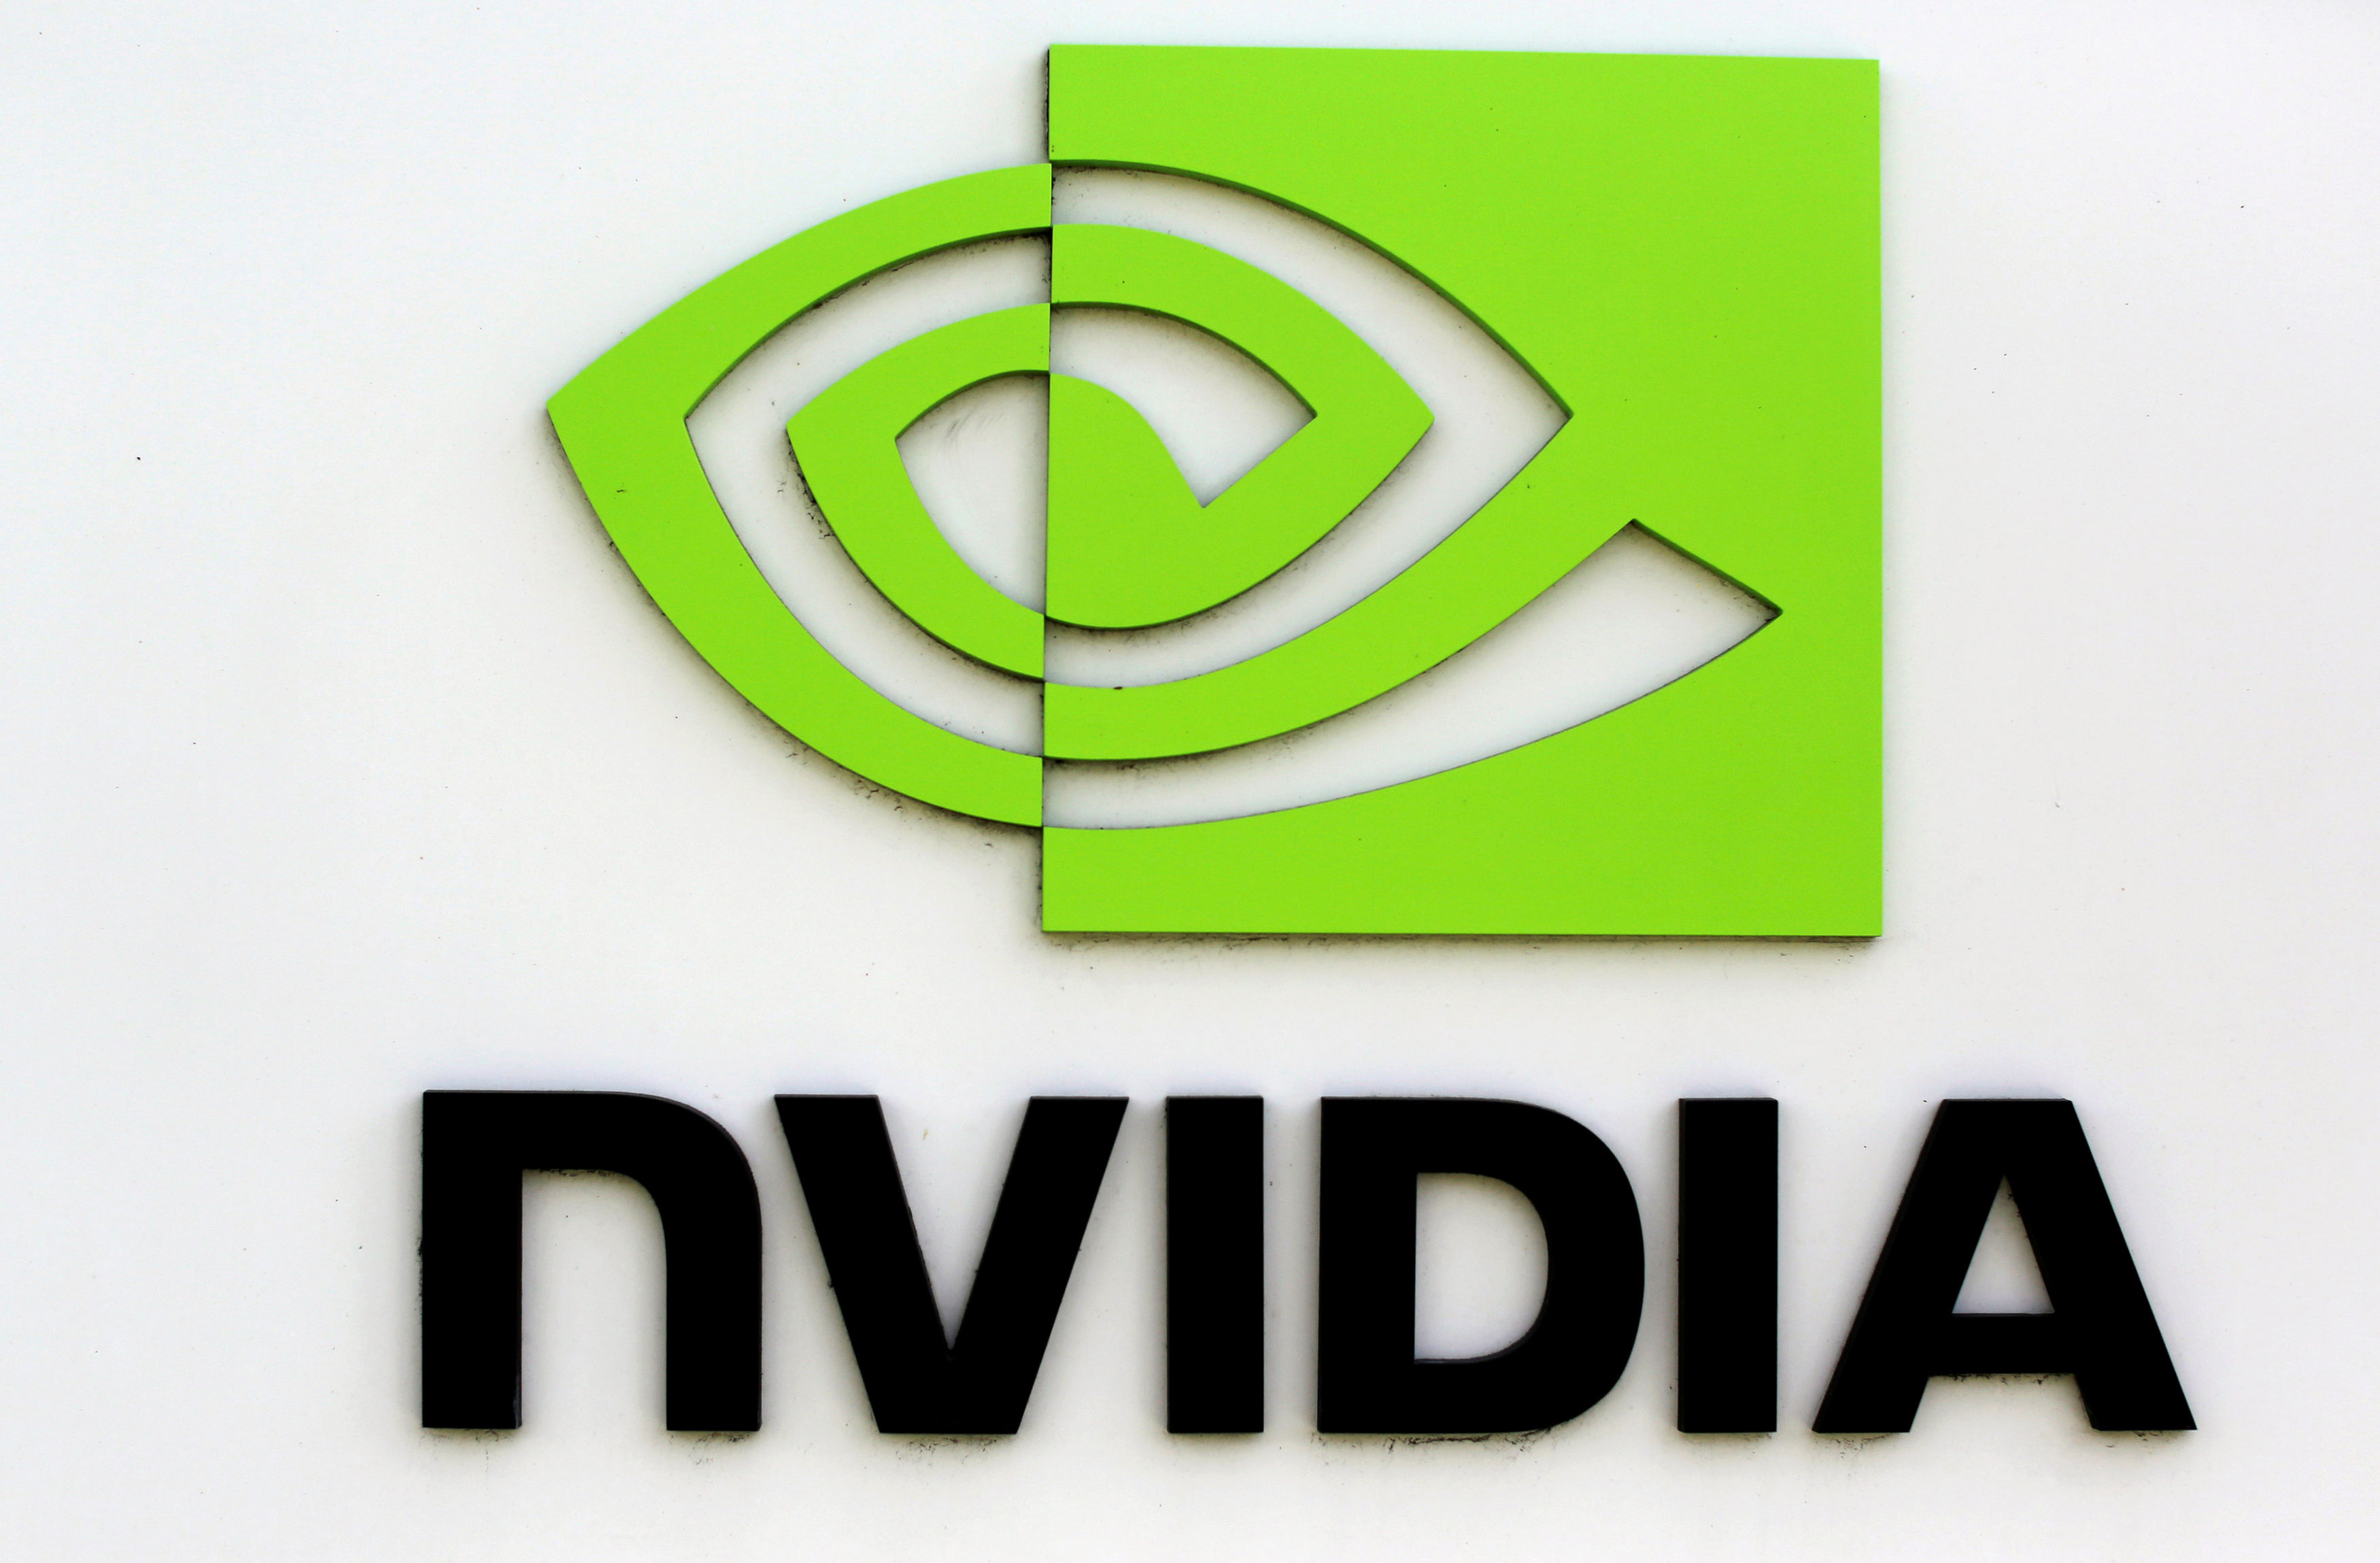 The logo of technology company Nvidia is seen at its headquarters in Santa Clara, California February 11, 2015. . REUTERS/Robert Galbraith/File Photo